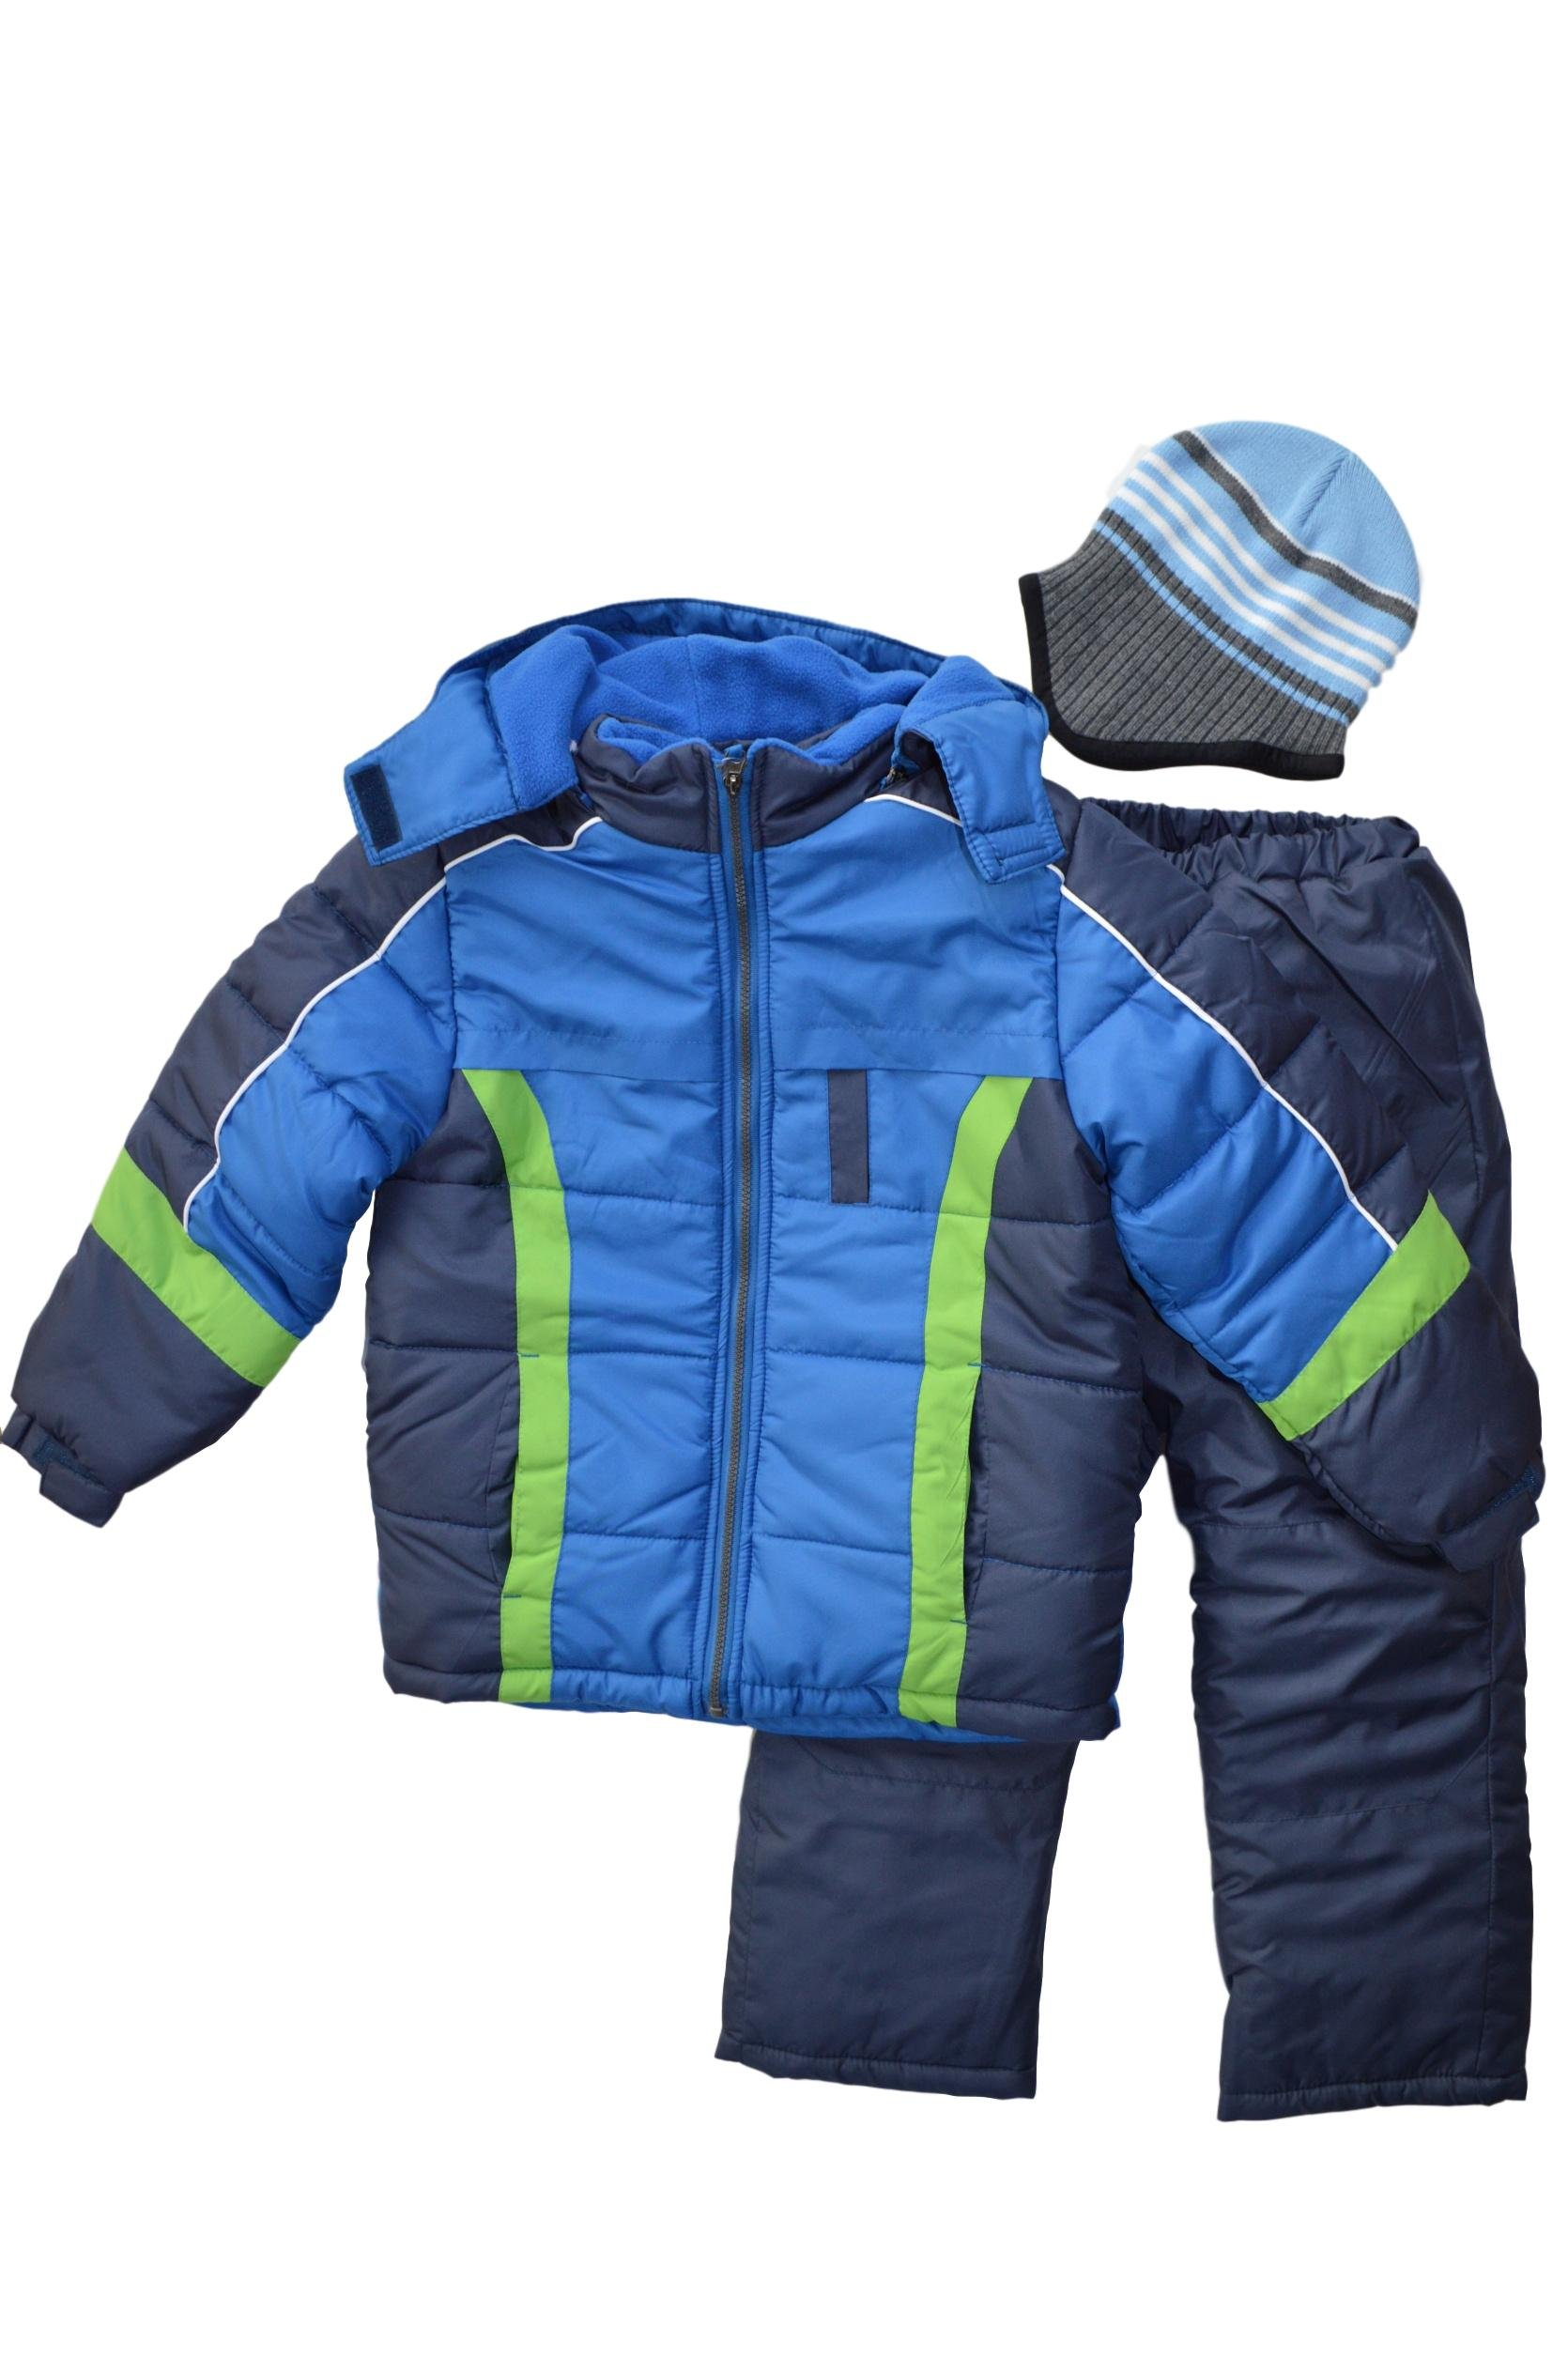 Snowsuits for Kids Boy's 3-Piece Active Snowsuit (5-6, Battalion Blue) by Snowsuits for Kids